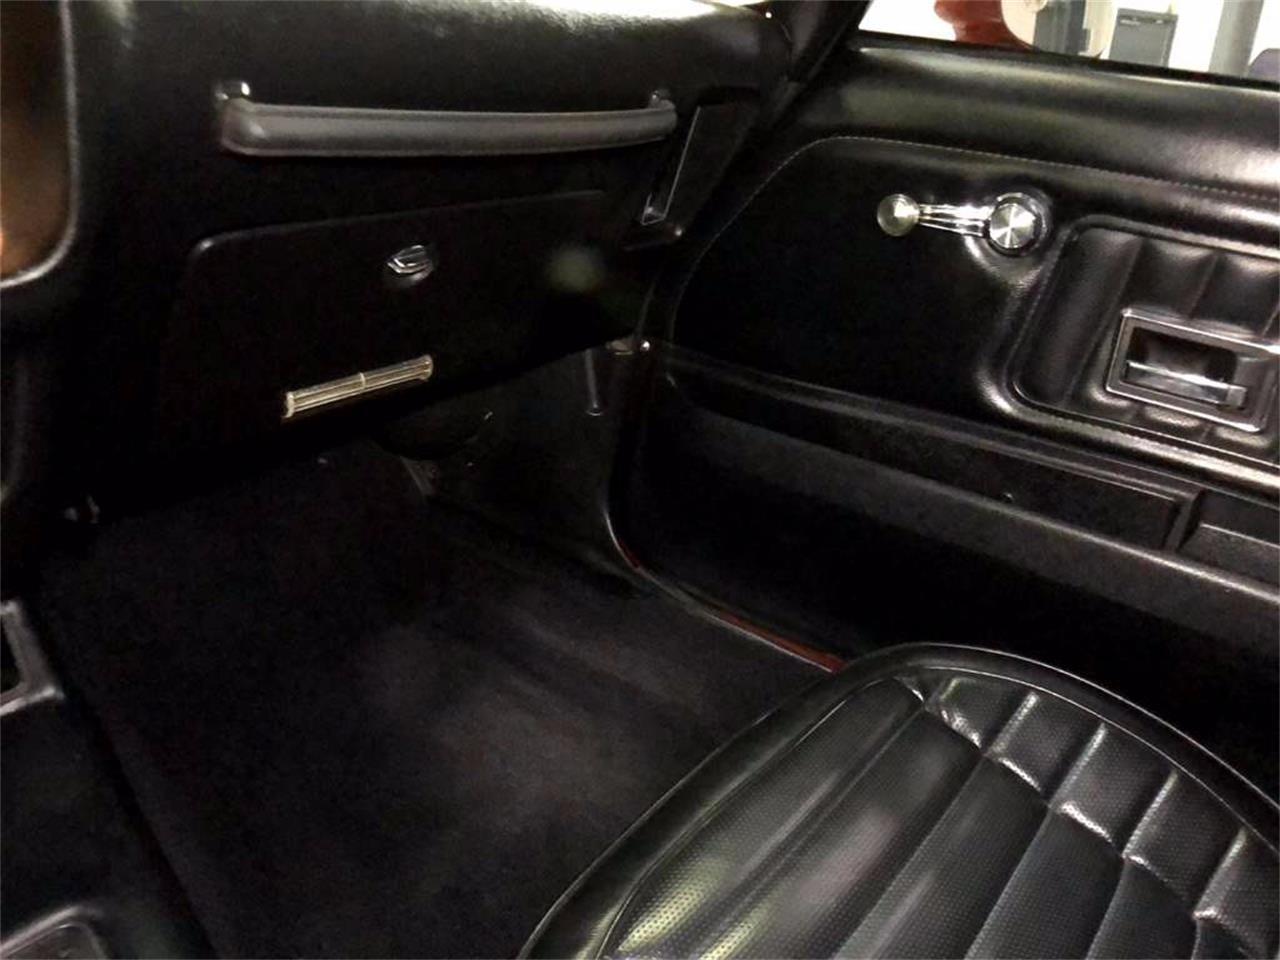 1972 Pontiac Firebird for sale in Gurnee, IL – photo 75